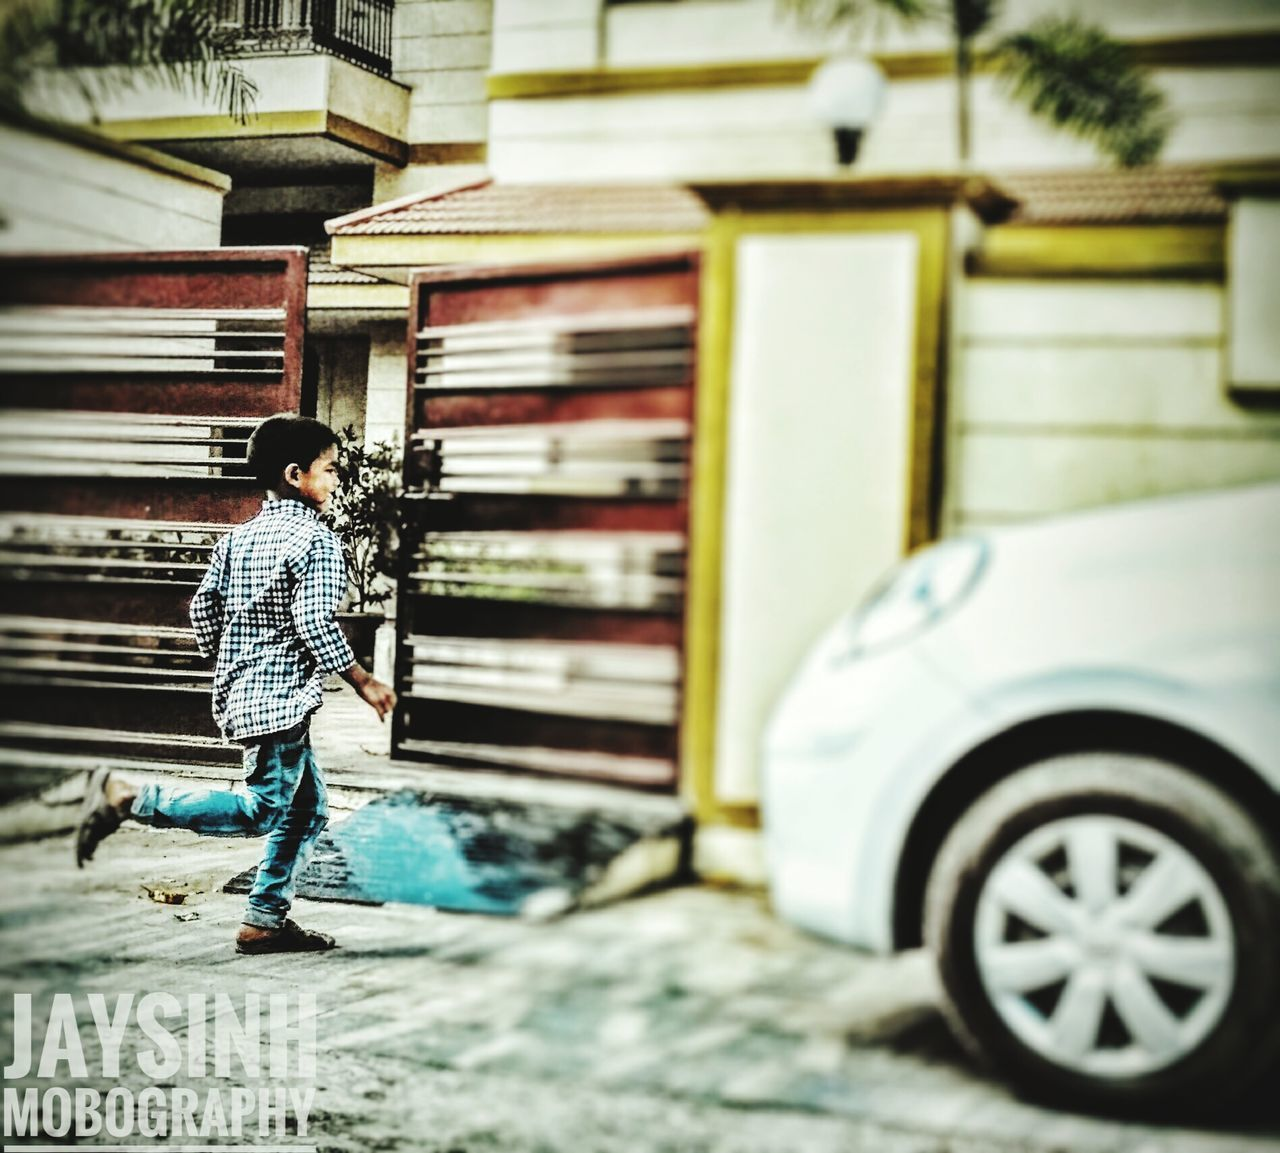 real people, full length, one person, casual clothing, architecture, transportation, mode of transport, built structure, lifestyles, land vehicle, outdoors, building exterior, day, standing, men, women, young adult, adult, people